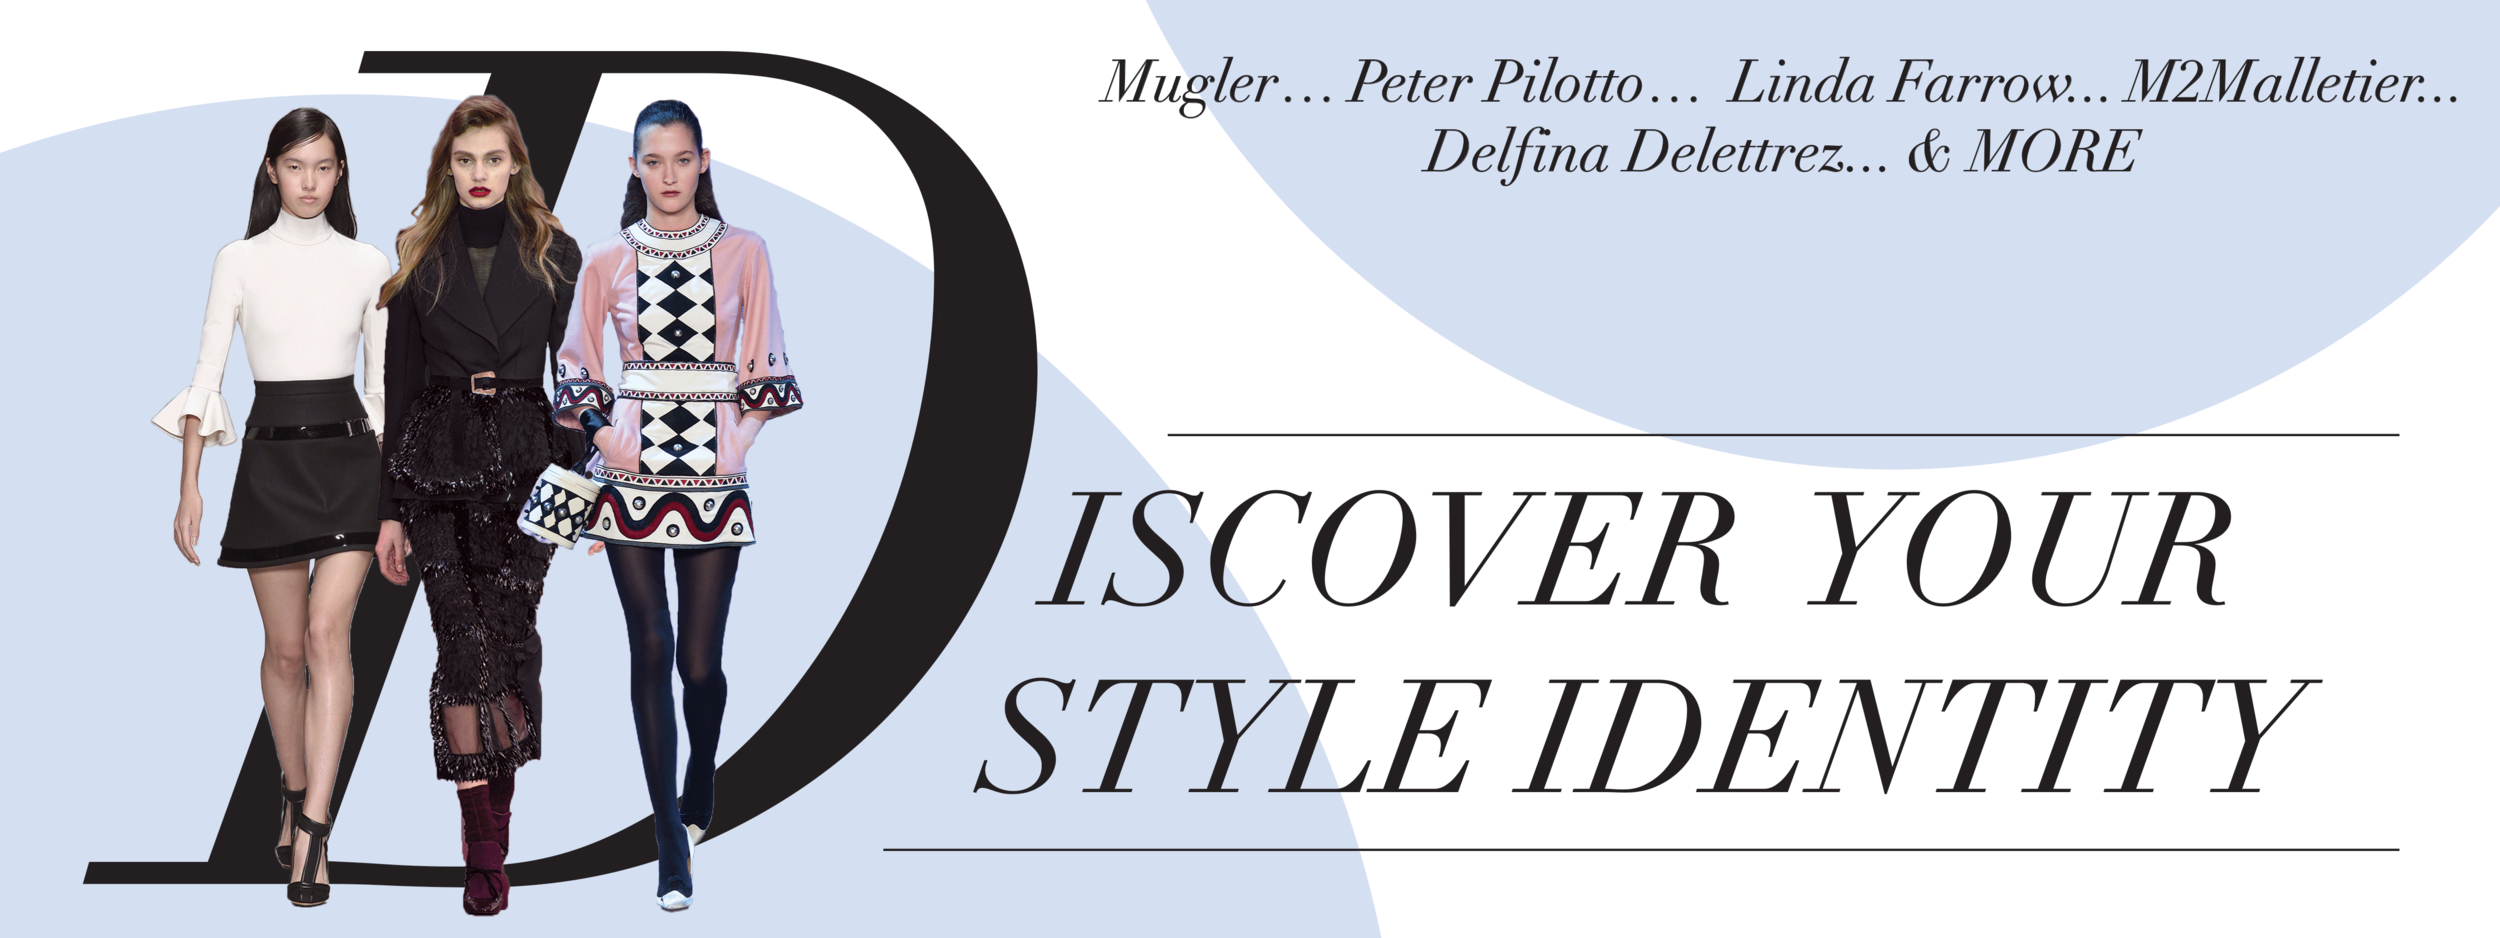 DISCOVERYOURSTYLEIDENTITY.png